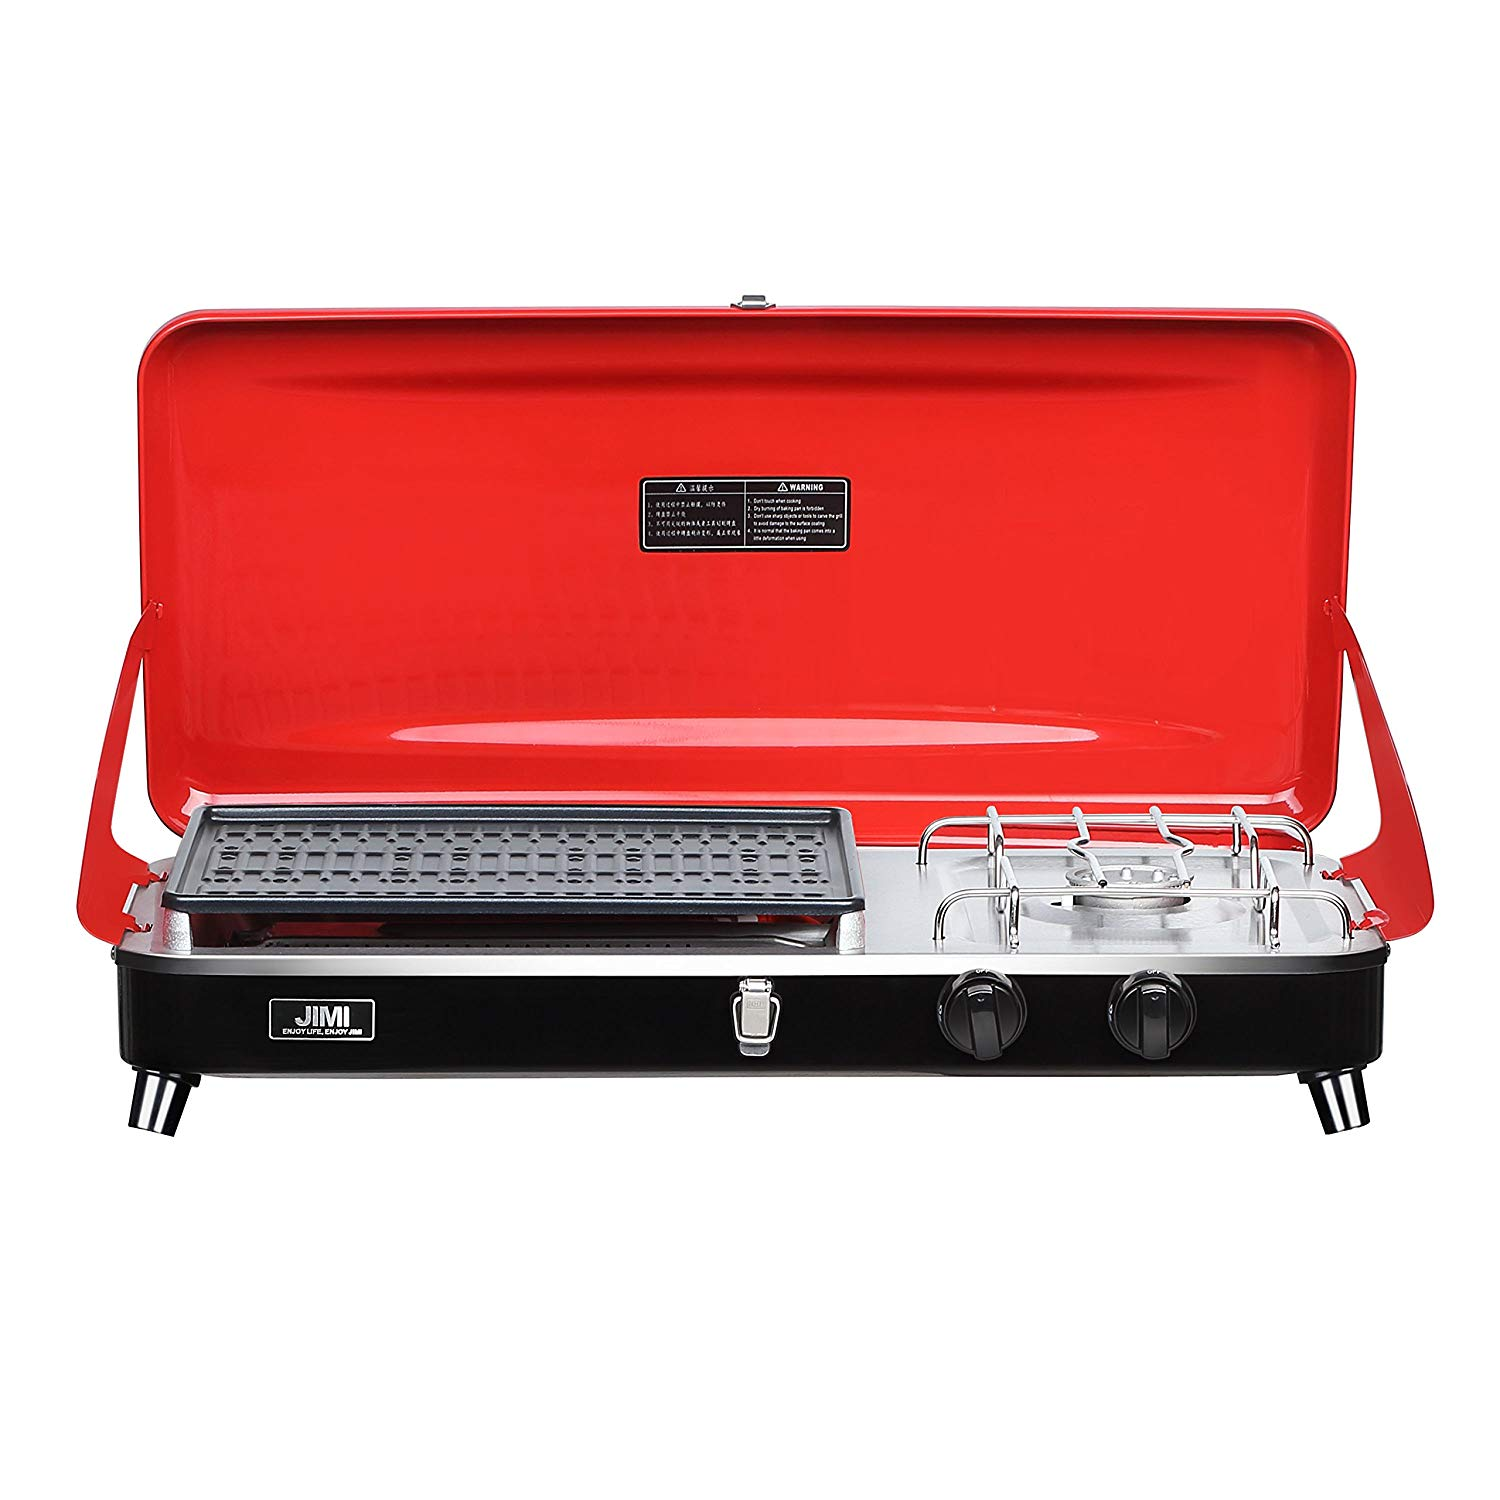 Outdoor Dual-Burner Camping Grill/Stove Portable Gas Grill Tailgating Cooker with Hose and AdapterOutdoor Propane Camping Grill/Stove Portable Gas Grill Dual-Burner Tailgating Cooker with Hose (Red)